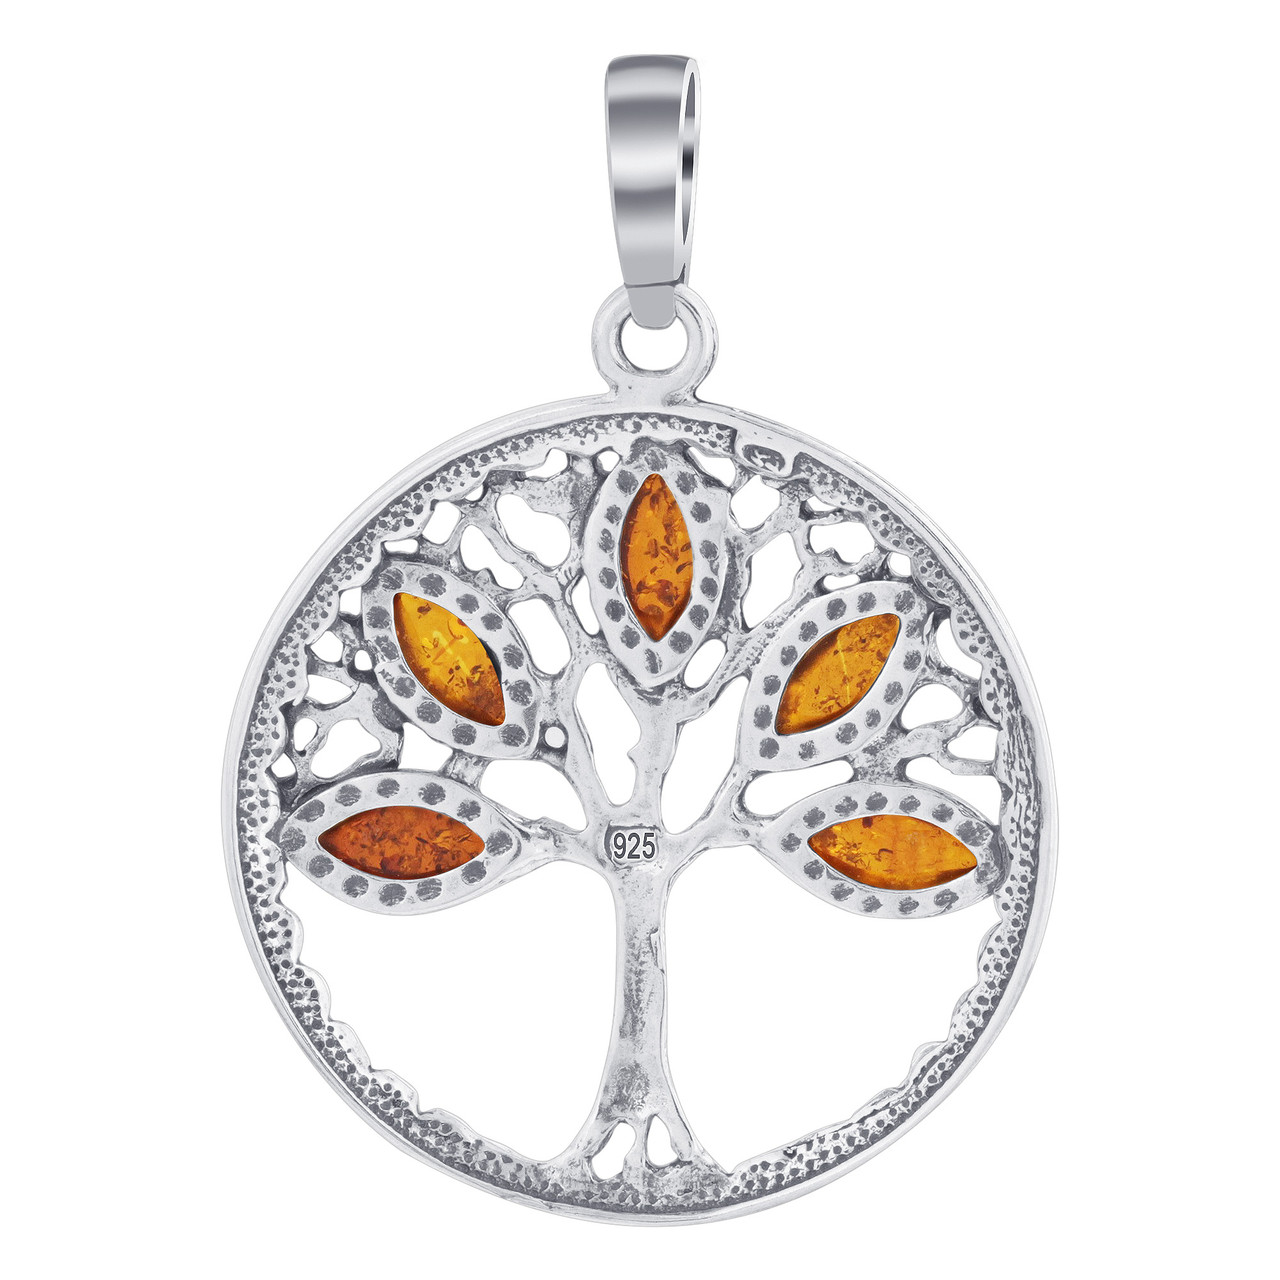 Tree of Life Pendant with Rich Marquise Cut